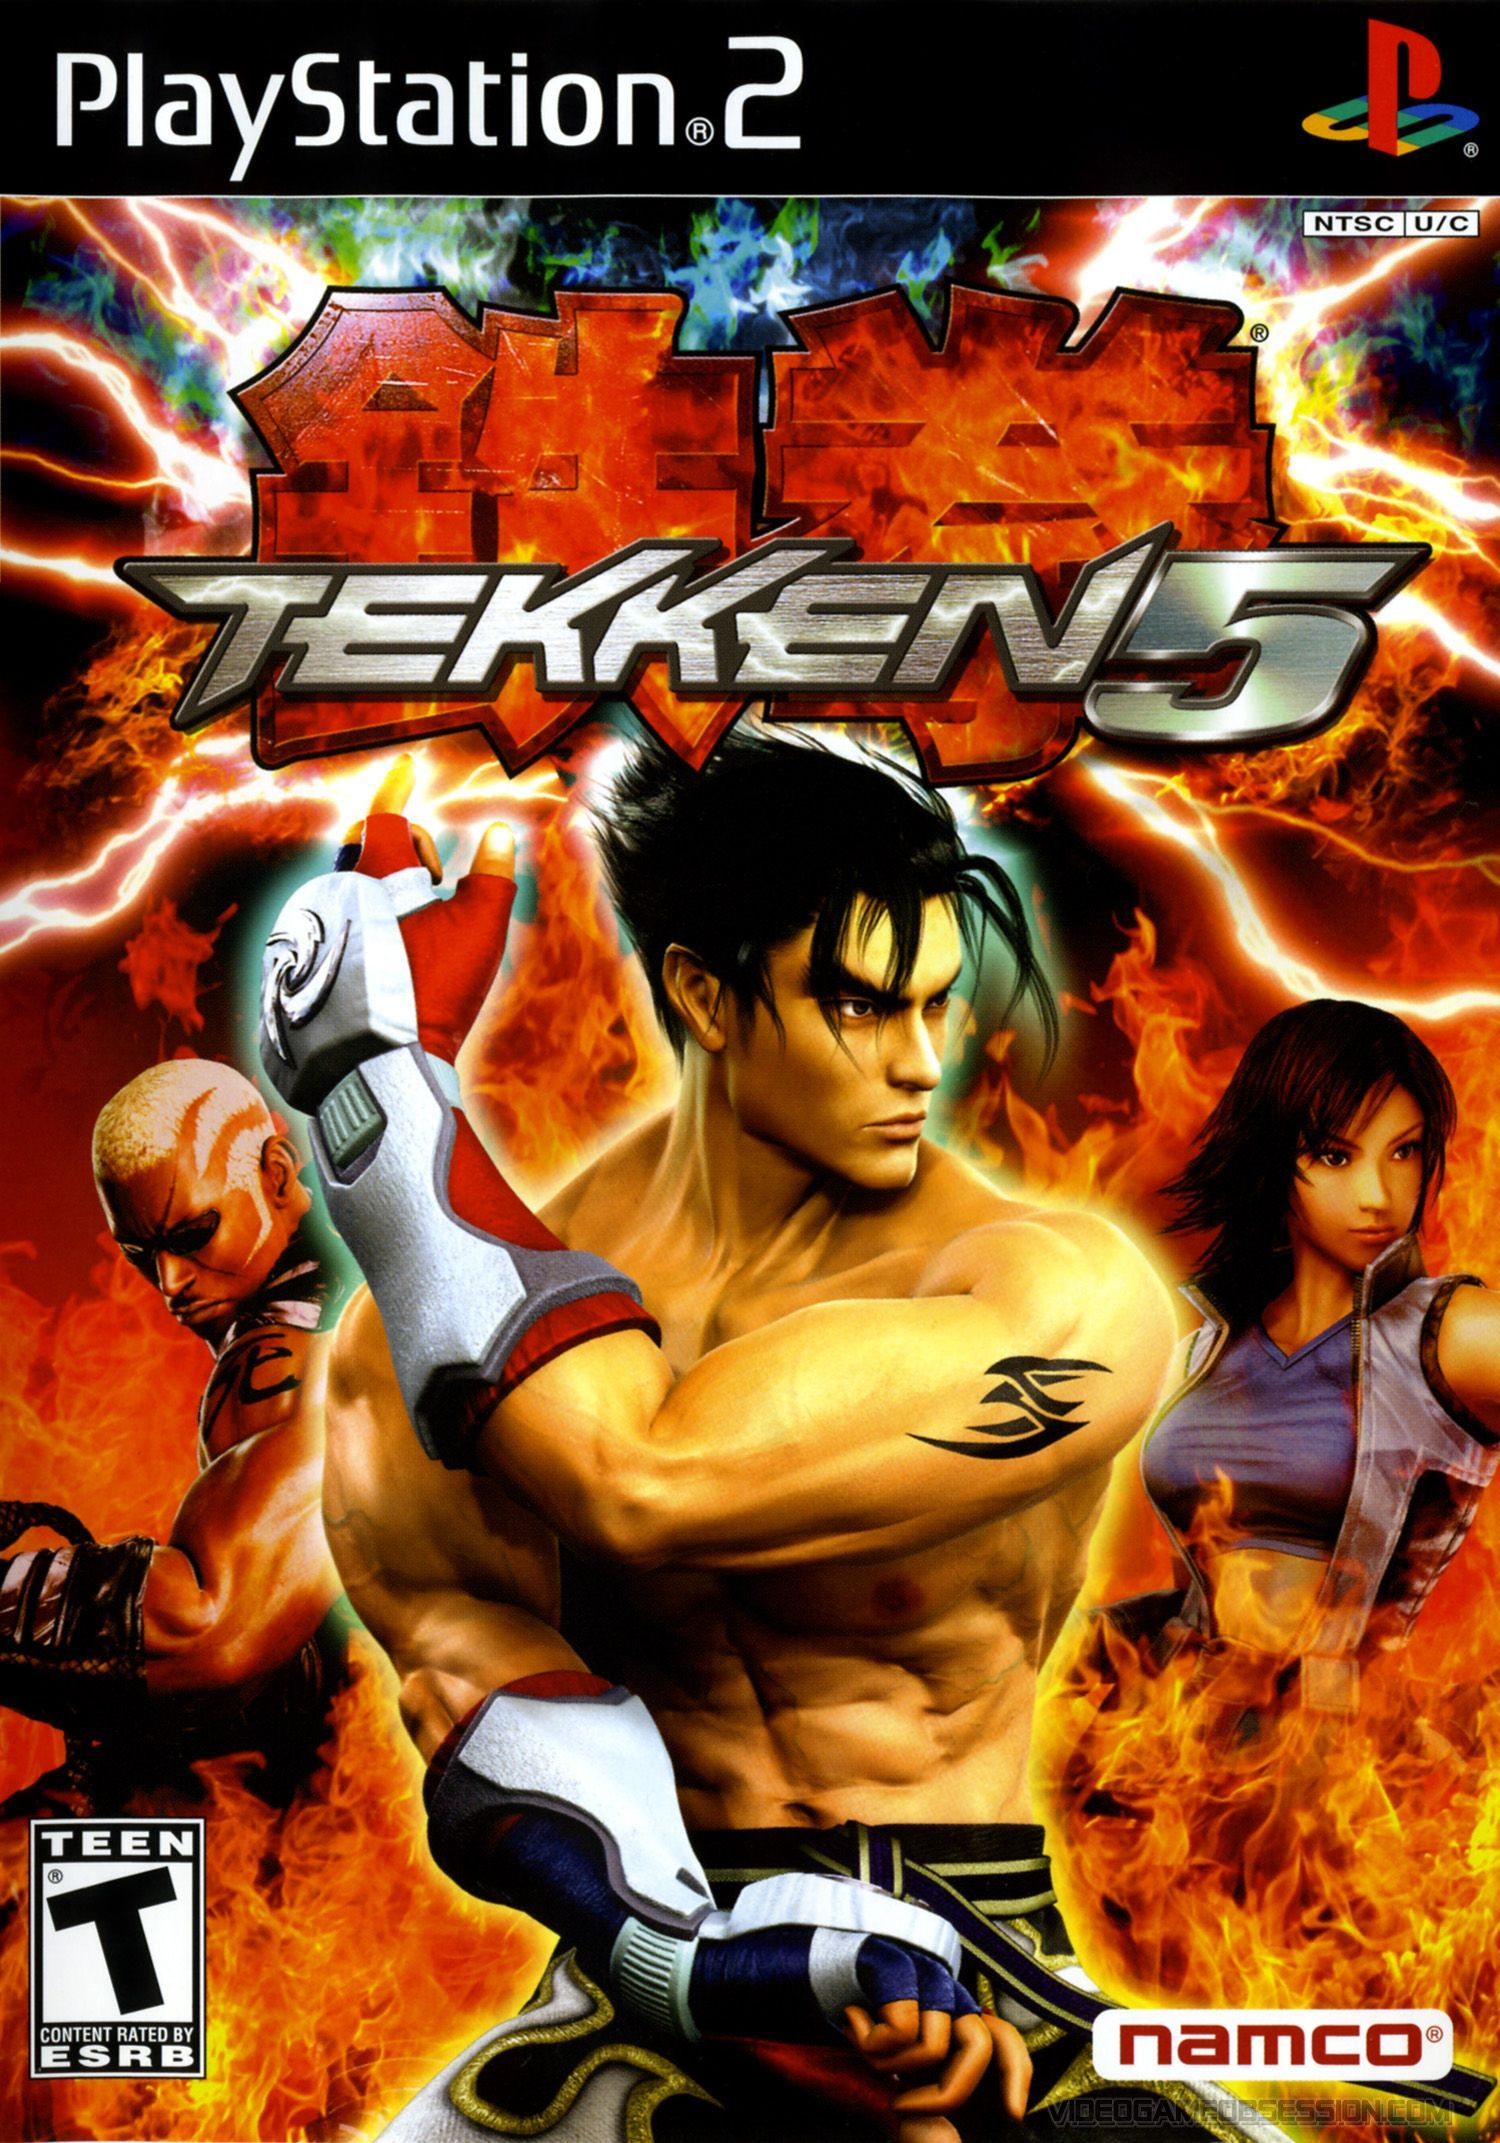 Tekken 5 Sony Playstation 2 Game With Images Pc Games Download